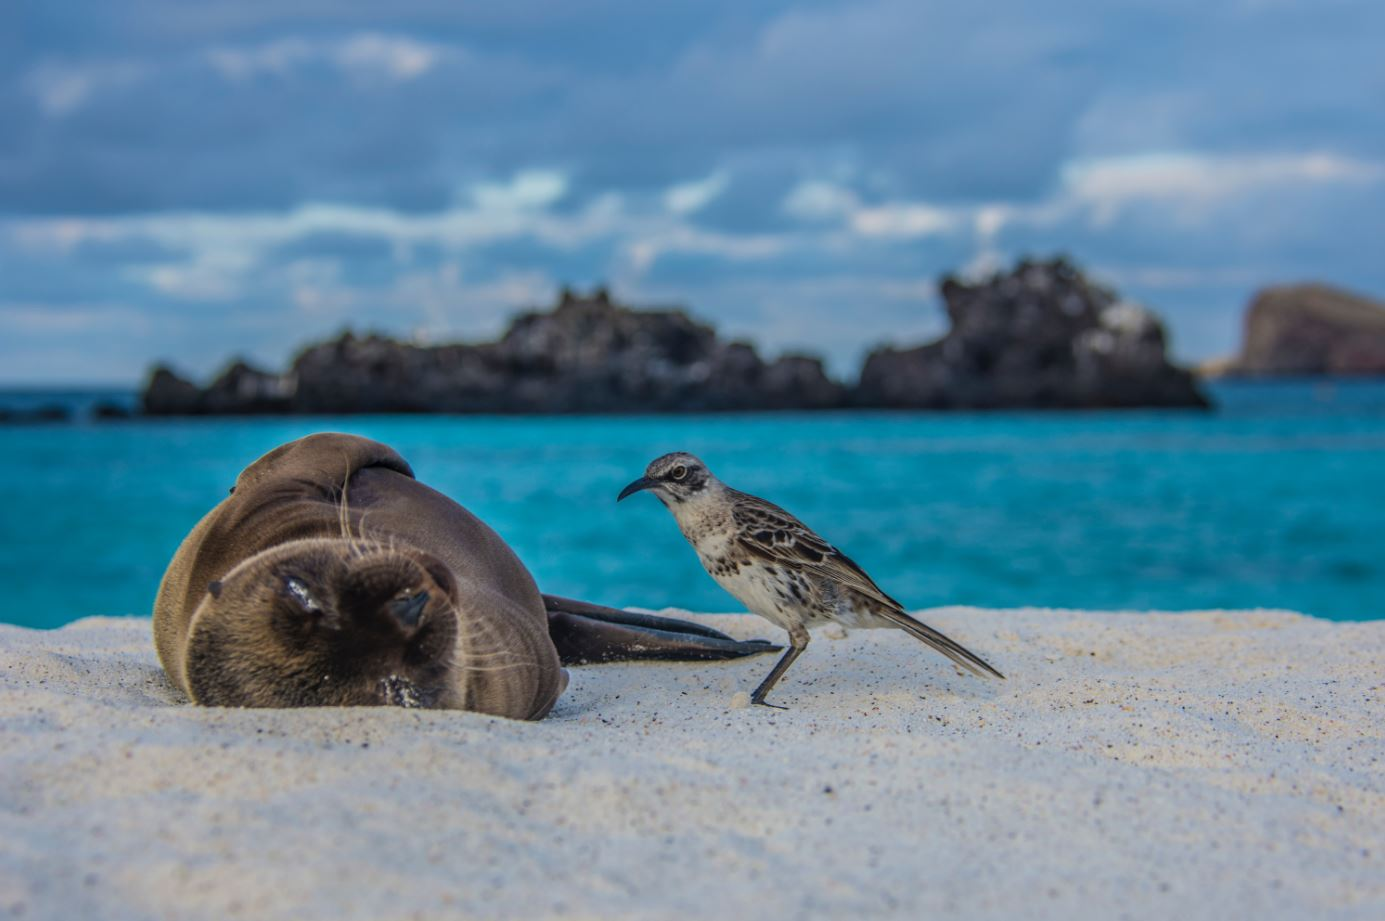 Sea lion and bird at Galapagos Islands' shore.